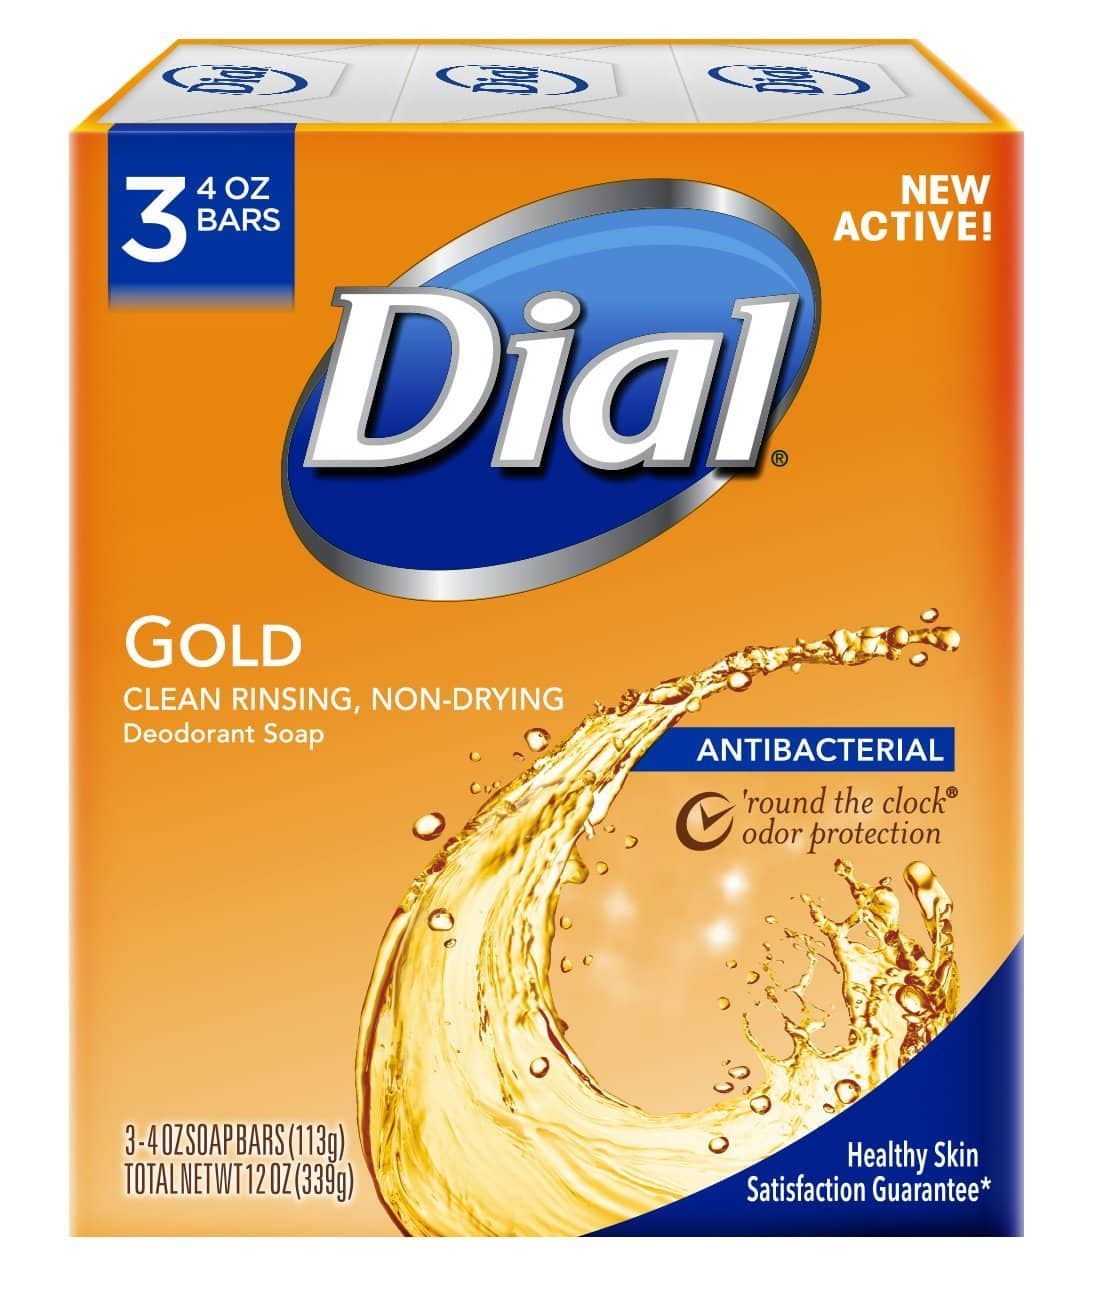 3-Count 4oz. Dial Antibacterial Deodorant Bar Soap for $1.61, 8-count for $4.32